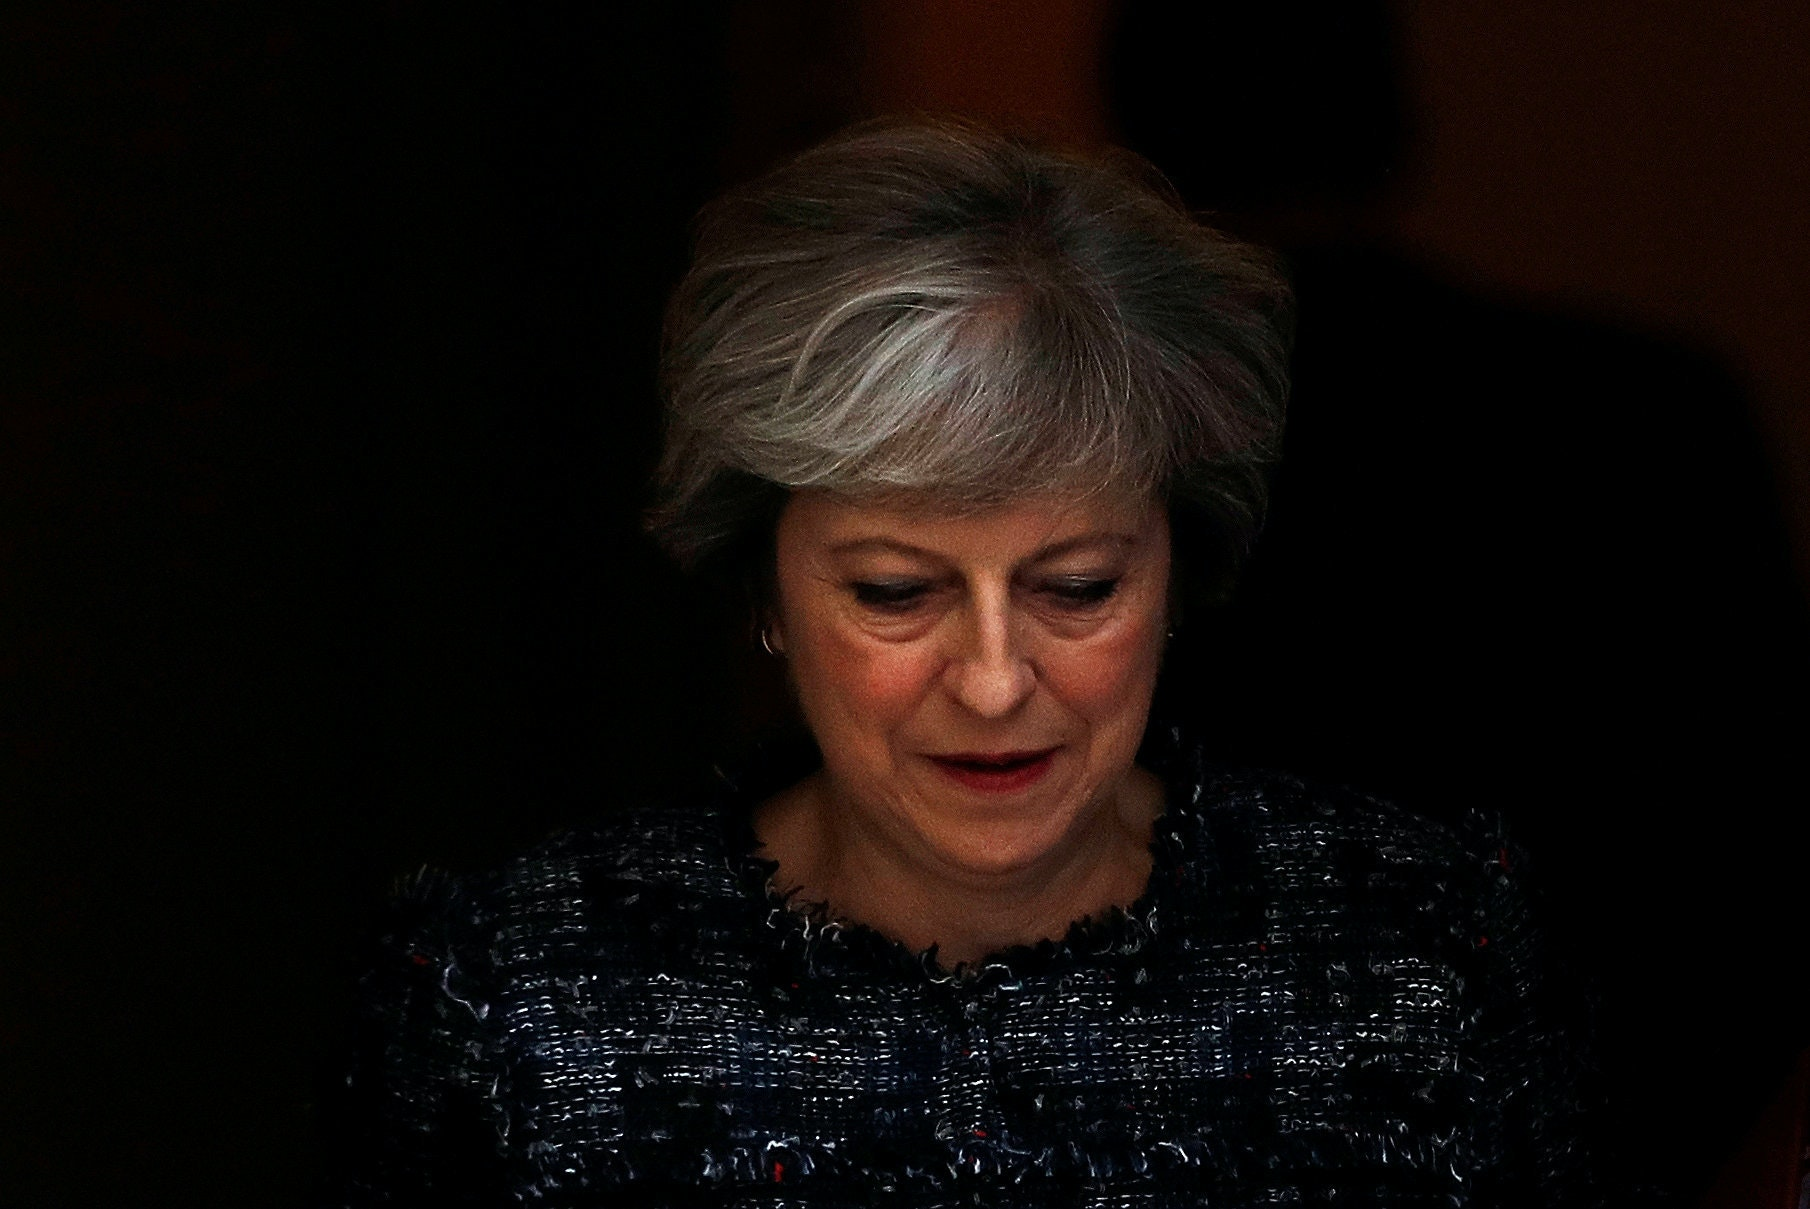 Britain's Prime Minister Theresa May leaves 10 Downing Street to attend Prime Minister's Questions, in London, September 13, 2017. REUTERS/Peter Nicholls